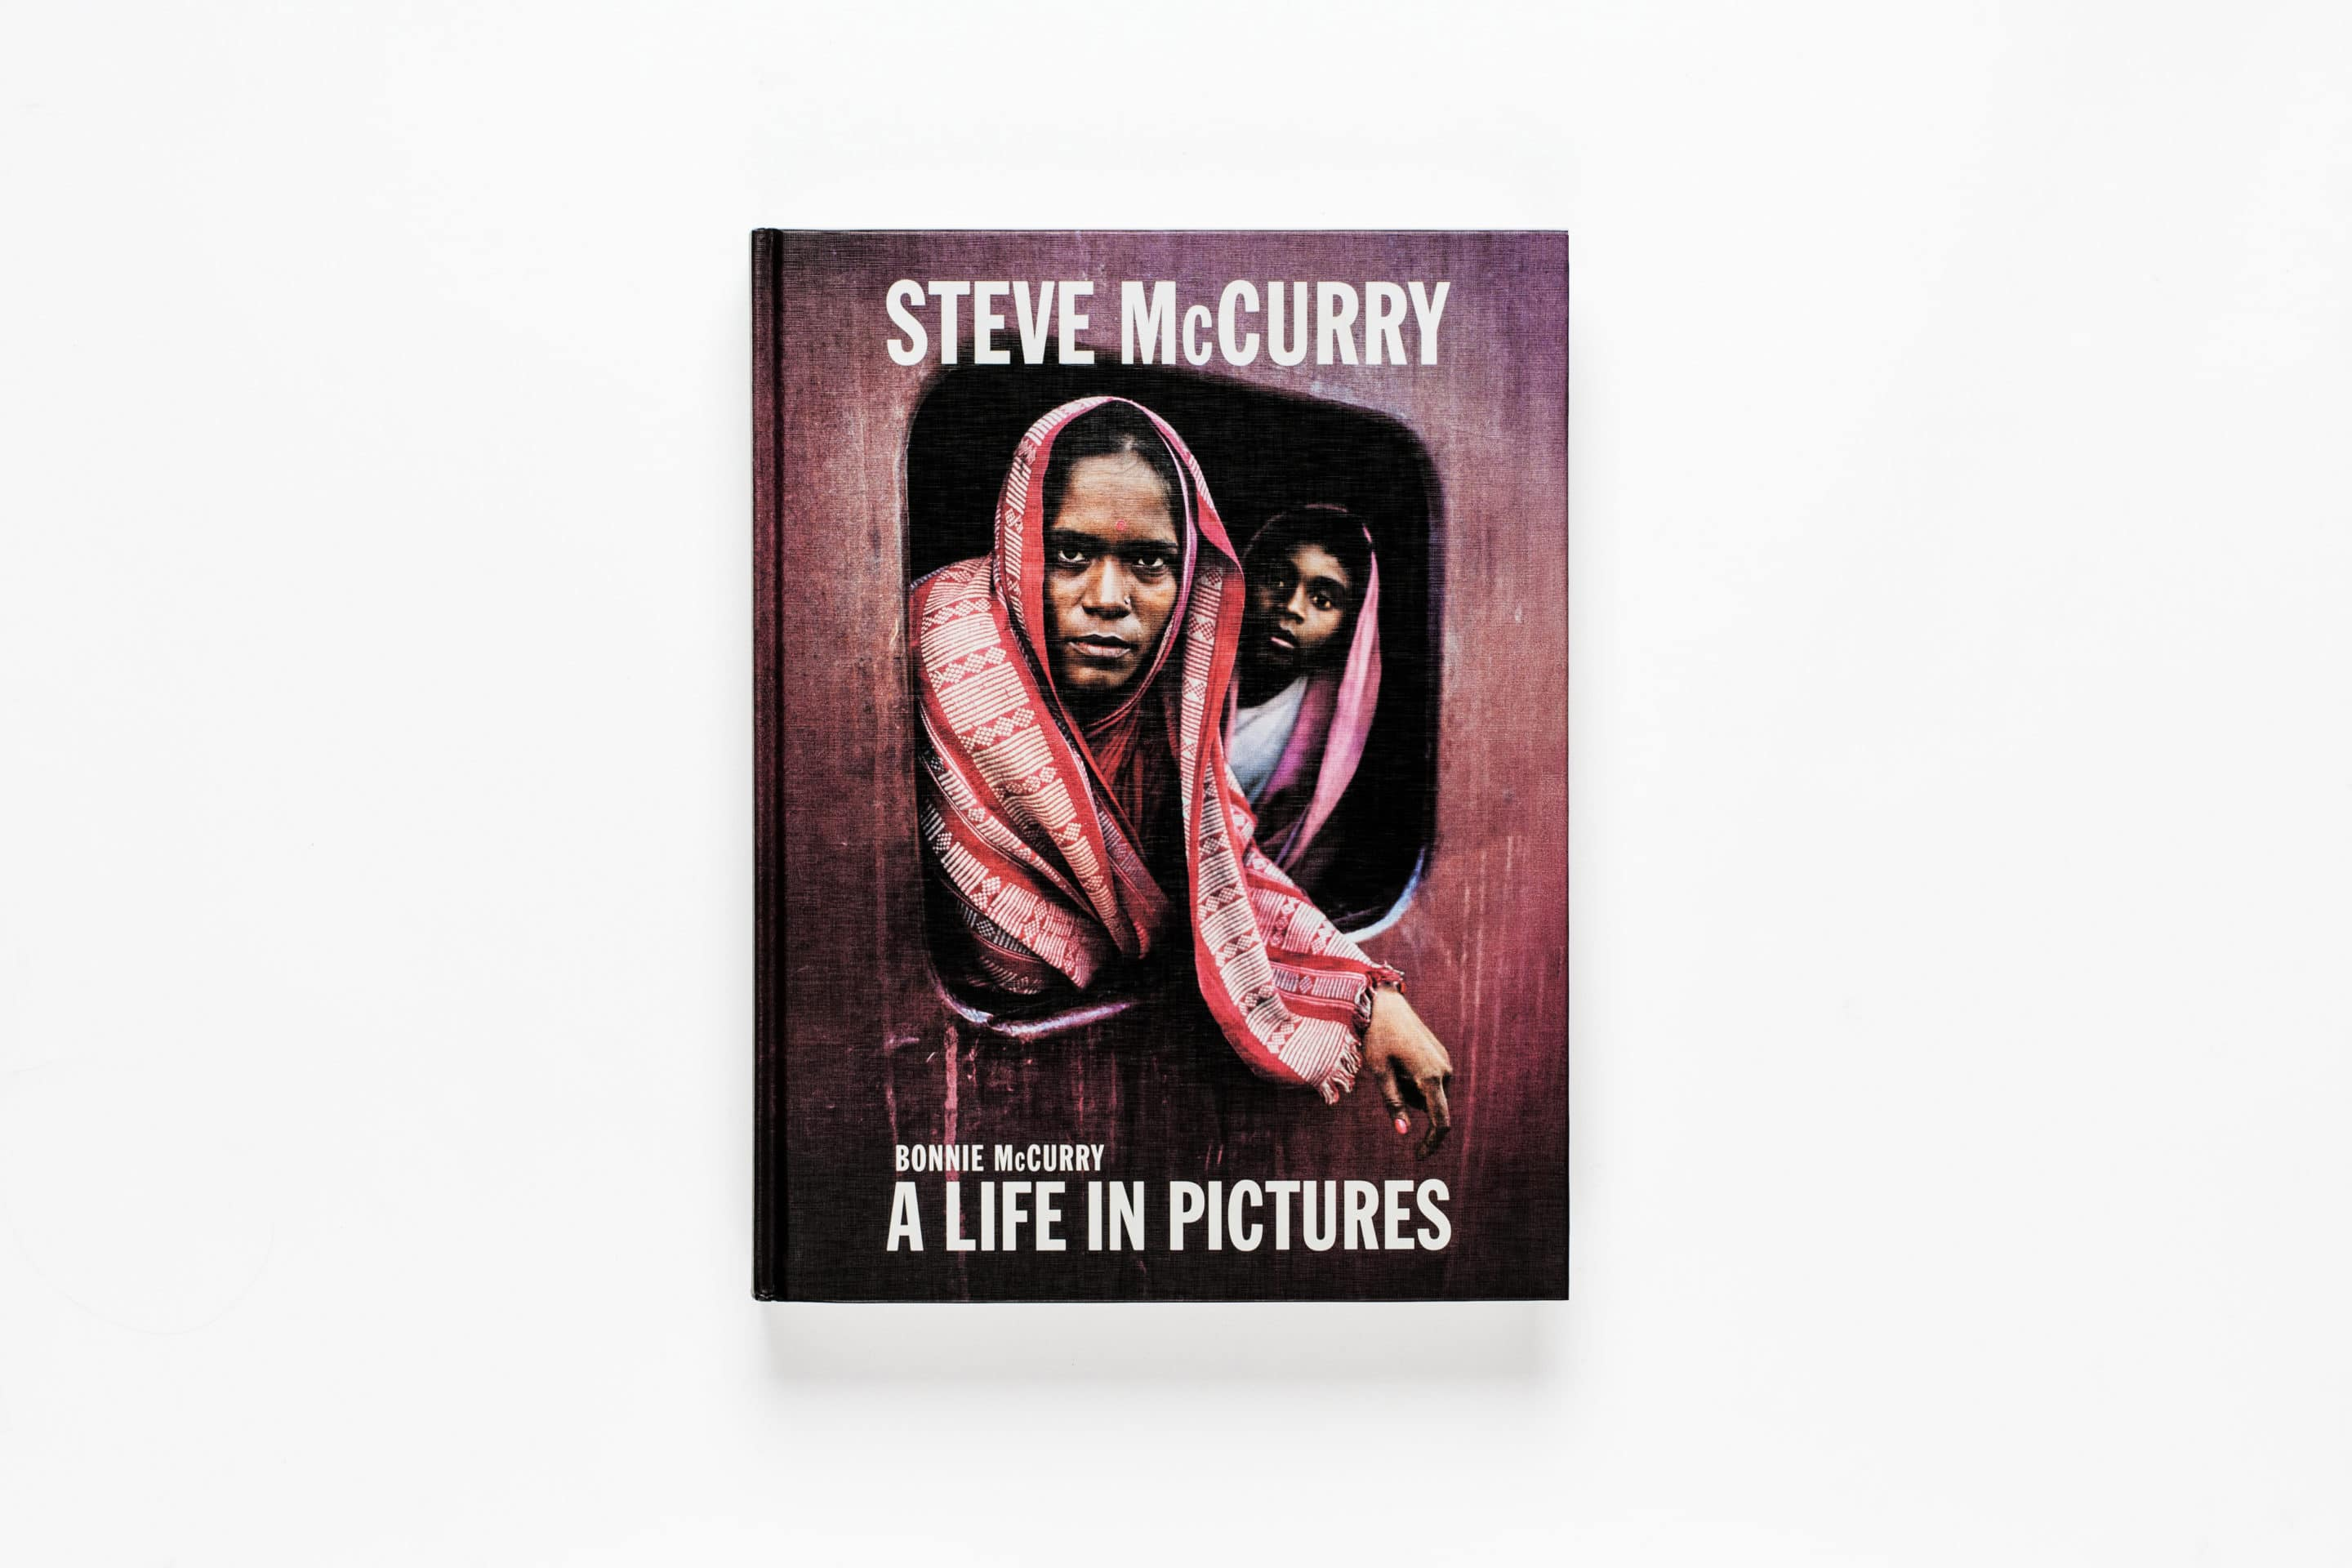 Steve McCurry – A Life in Pictures